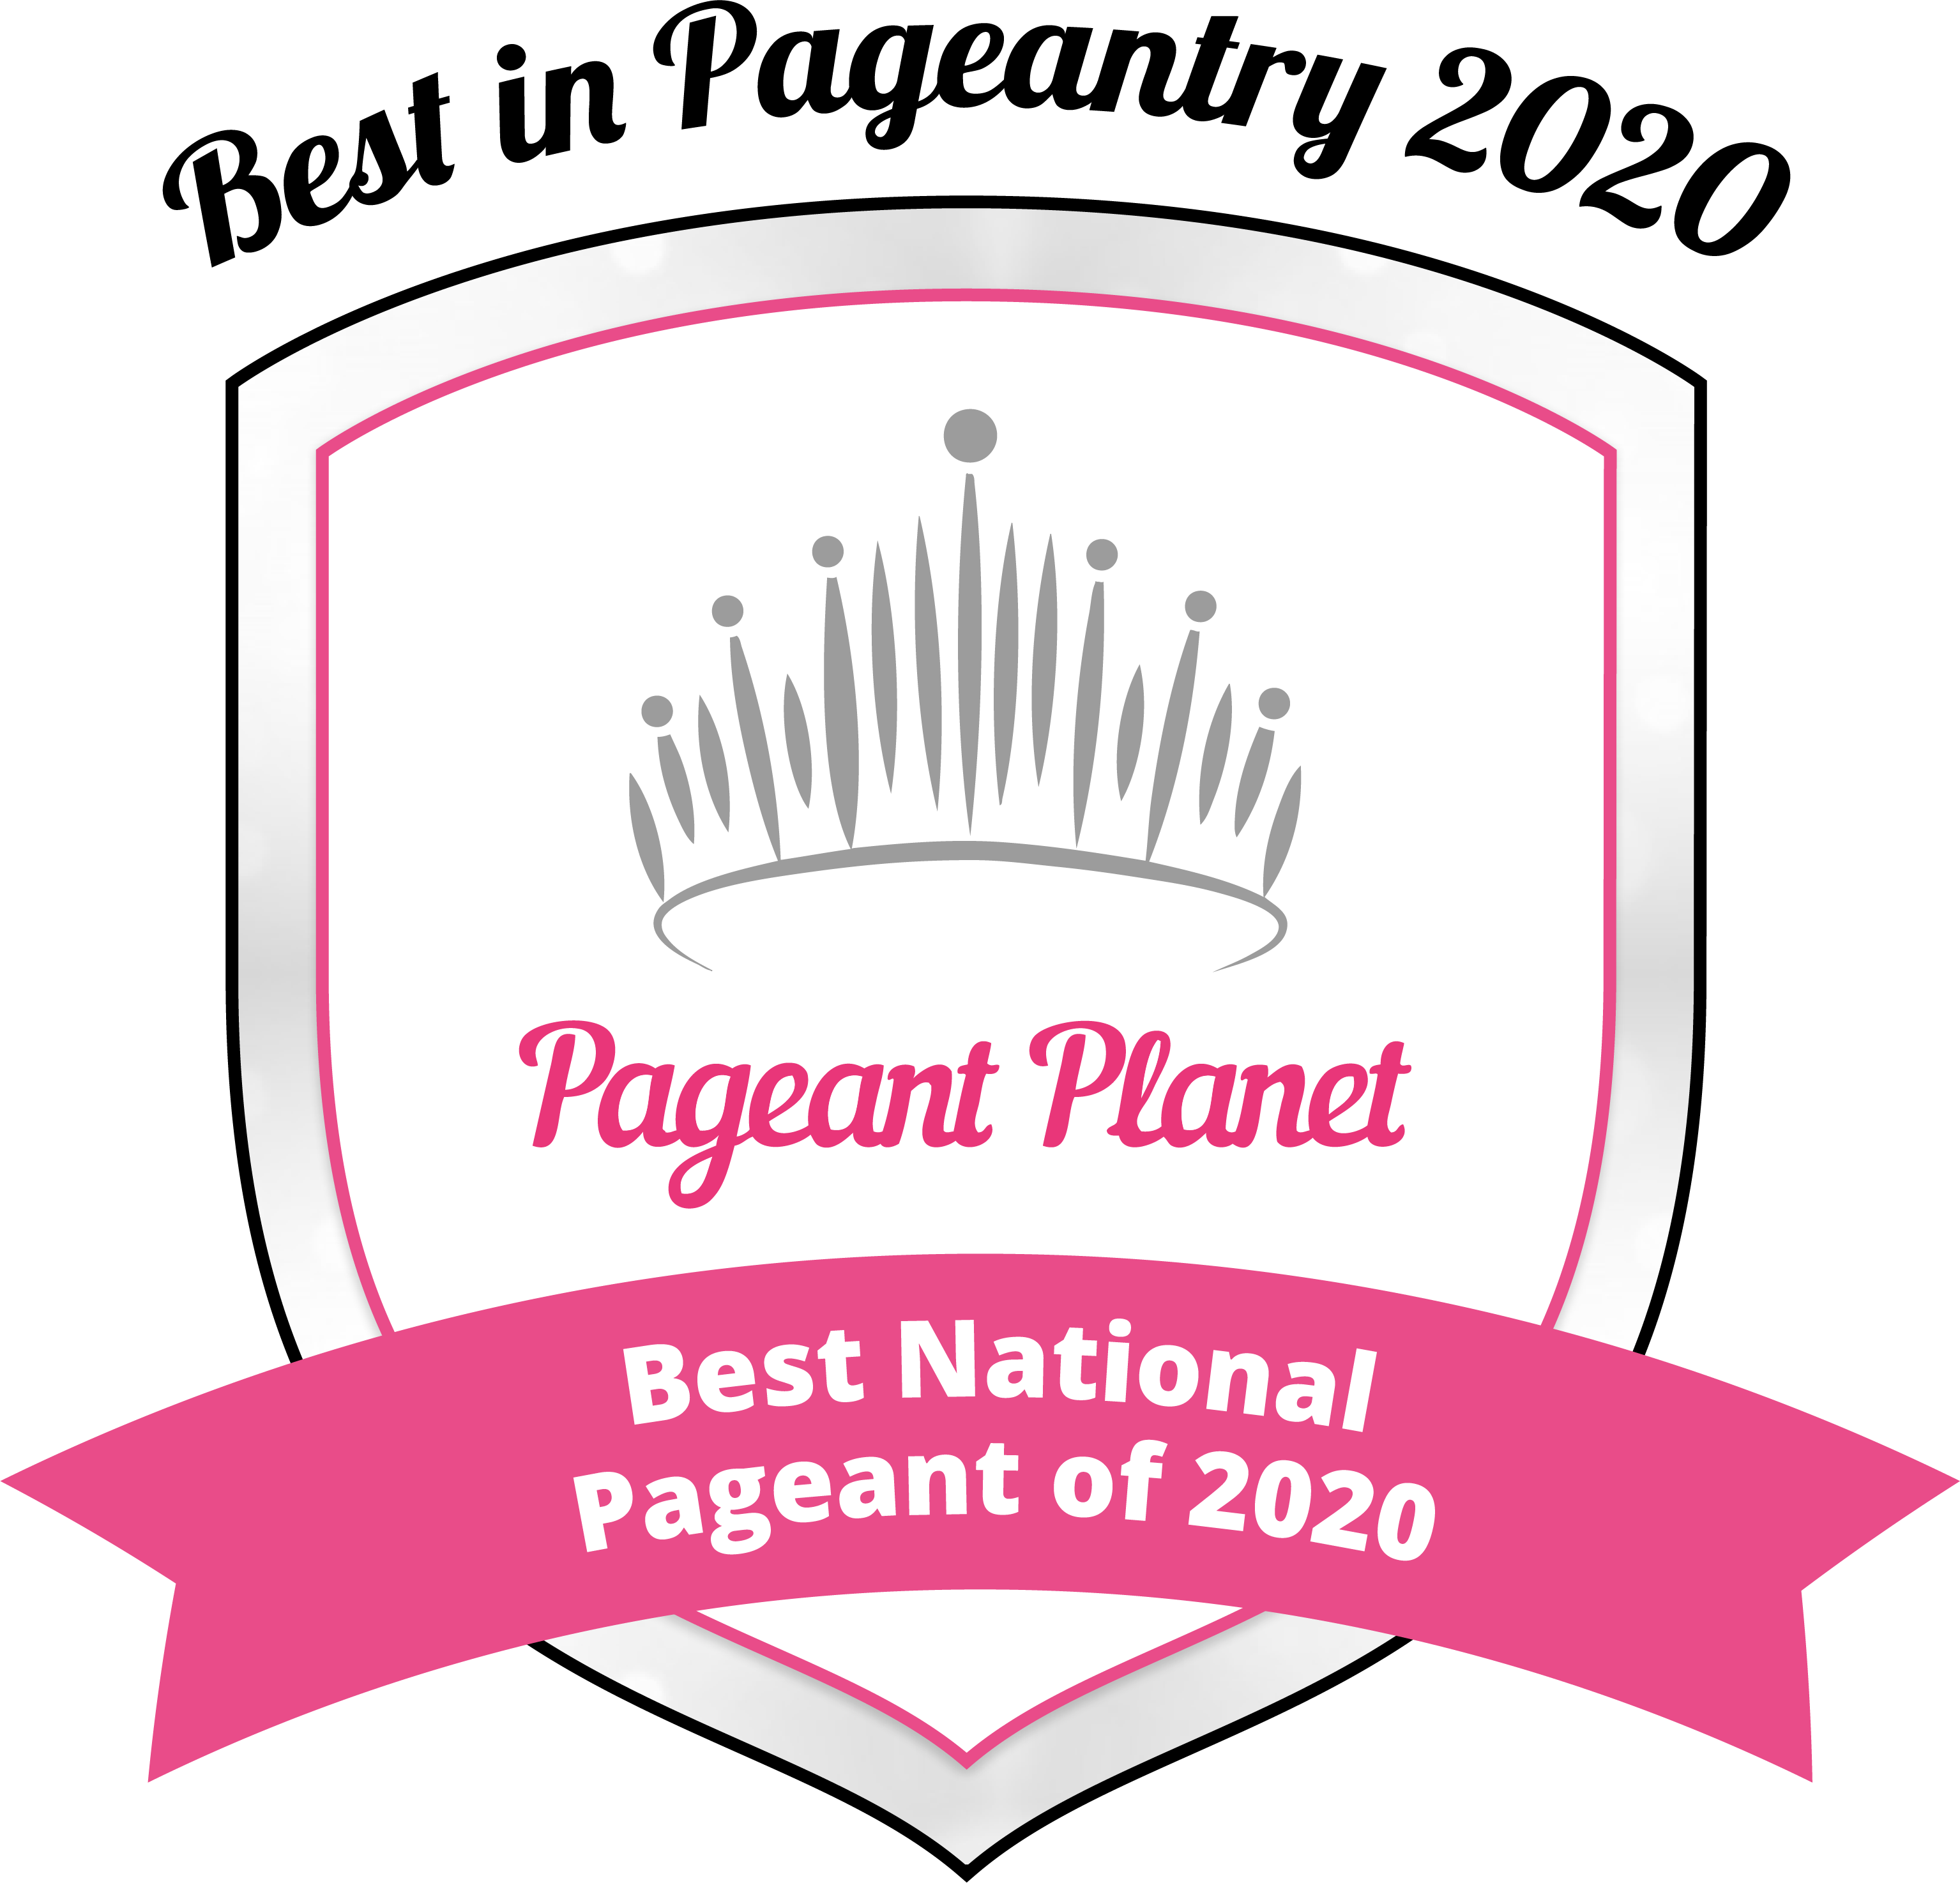 Best National Pageant of 2020